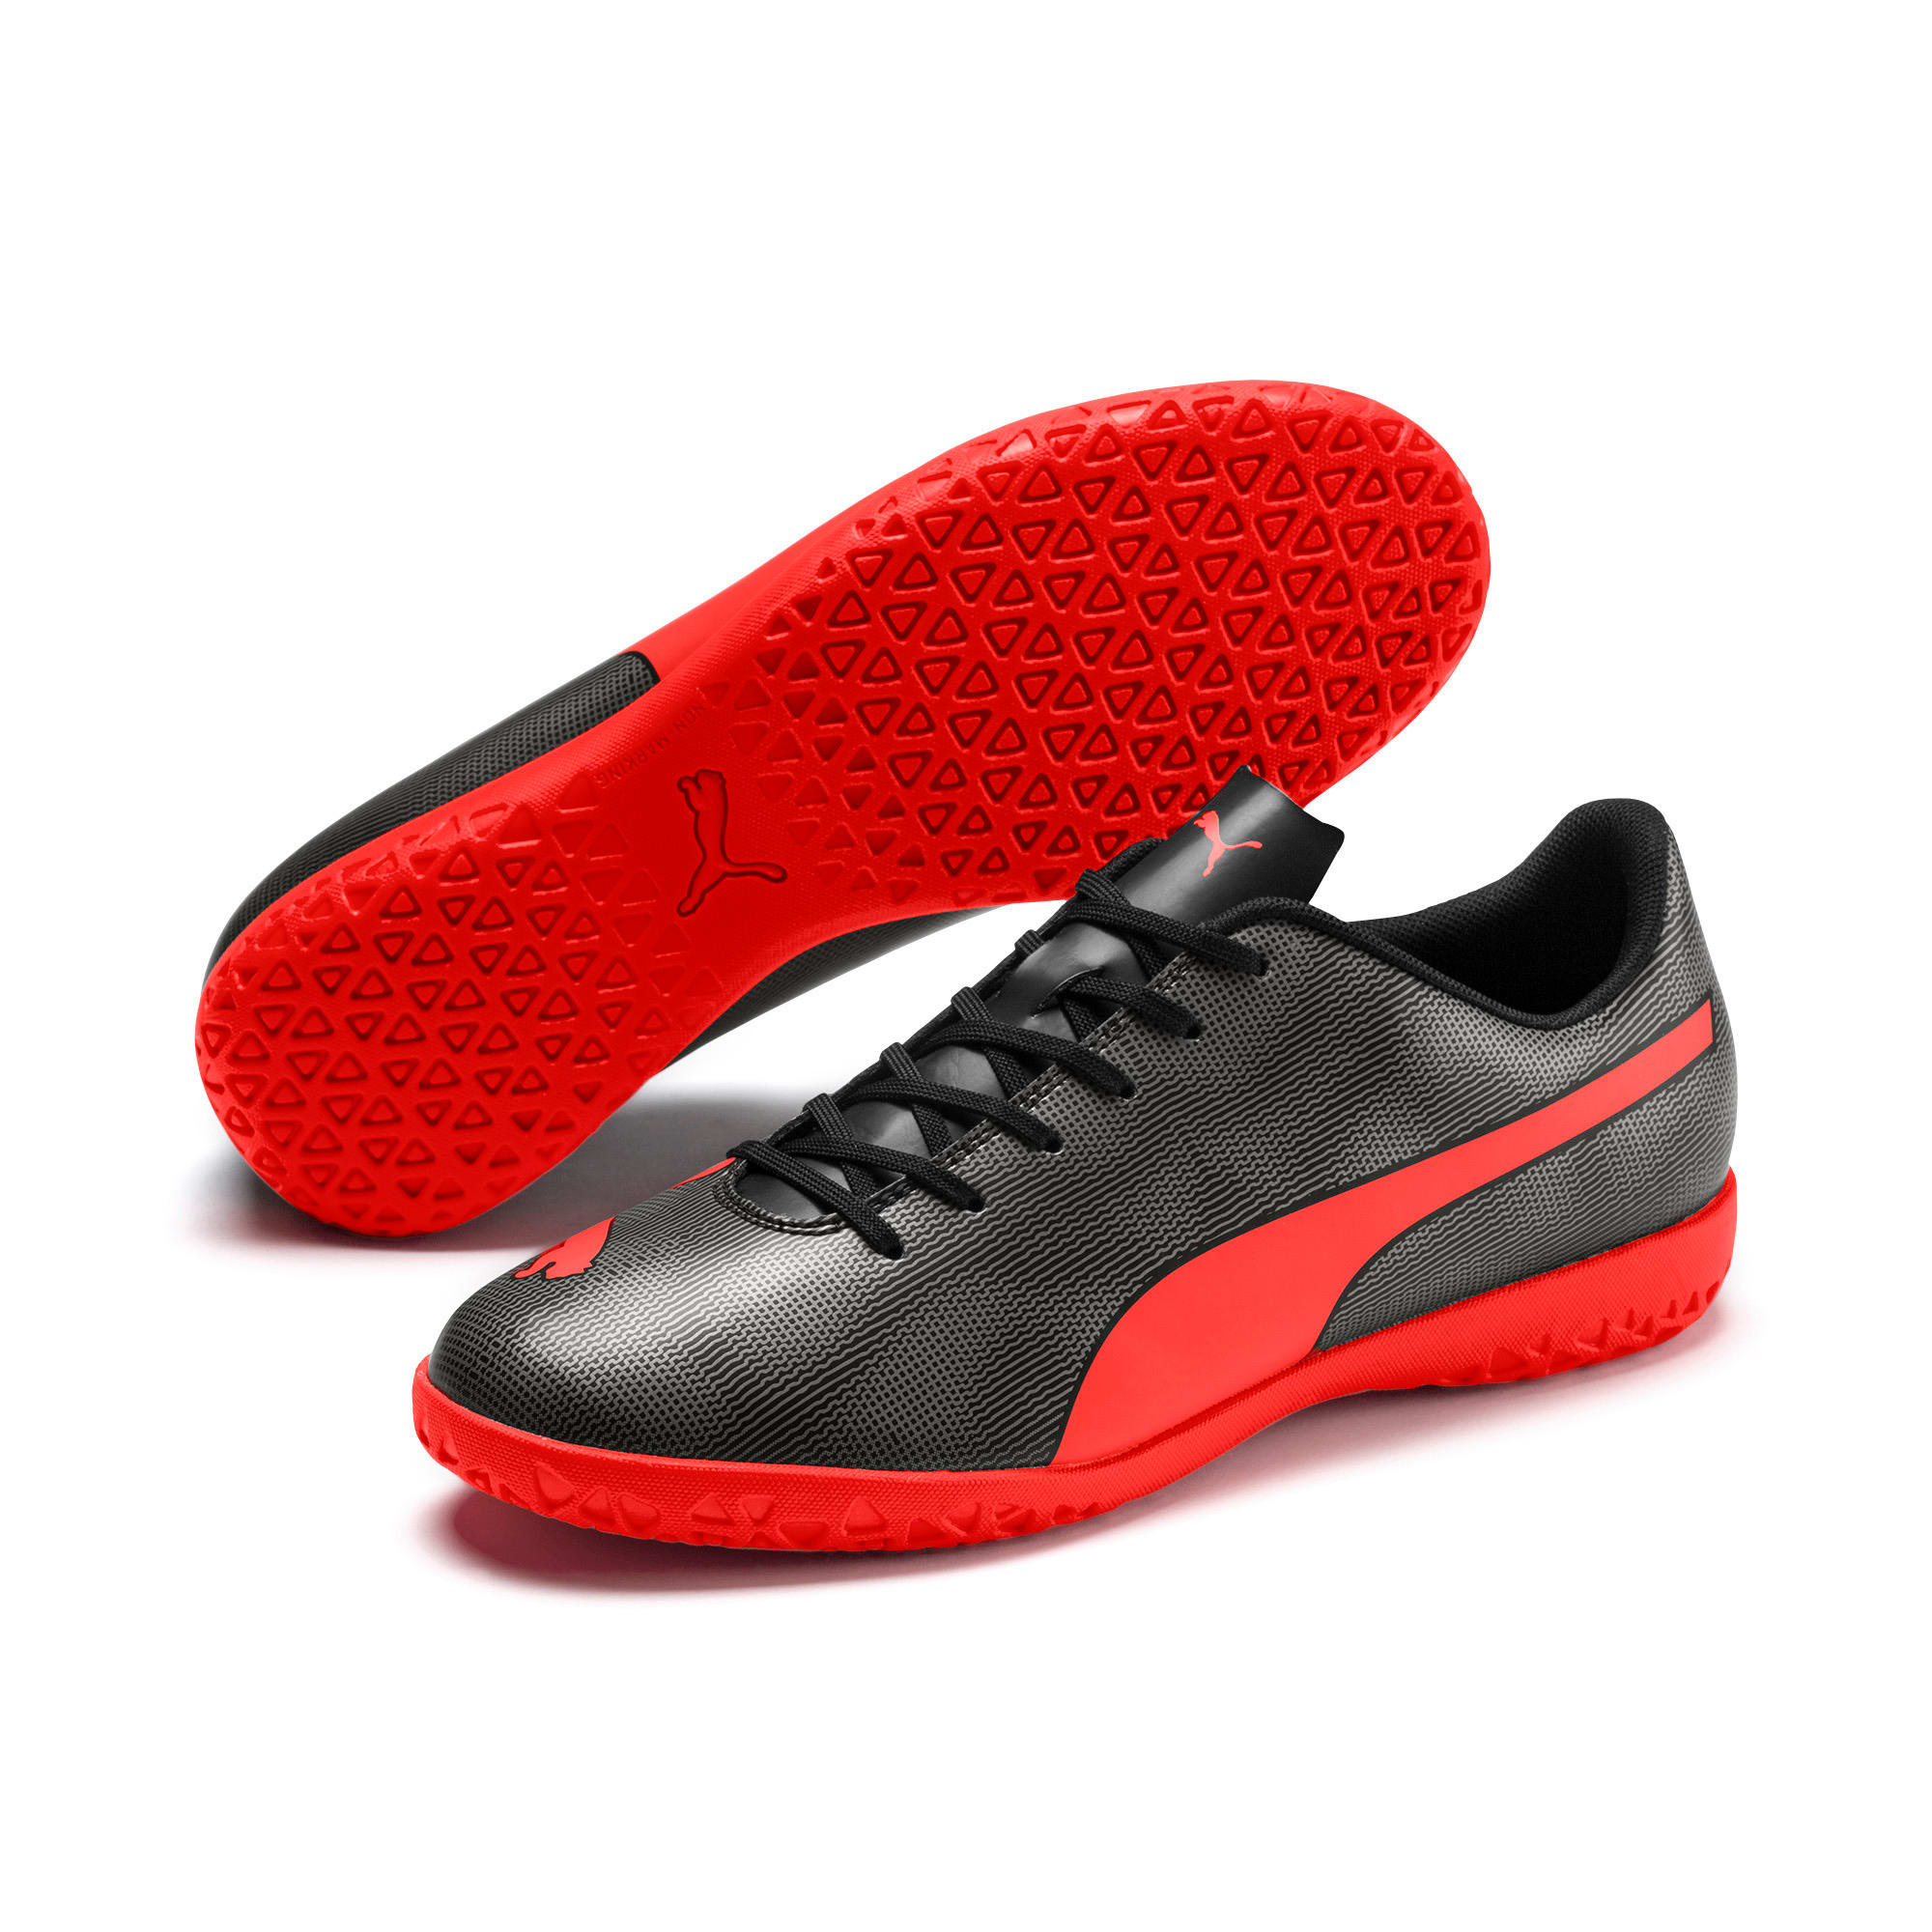 Thumbnail 2 of Rapido IT Men's Soccer Shoes, Black-Nrgy Red-Aged Silver, medium